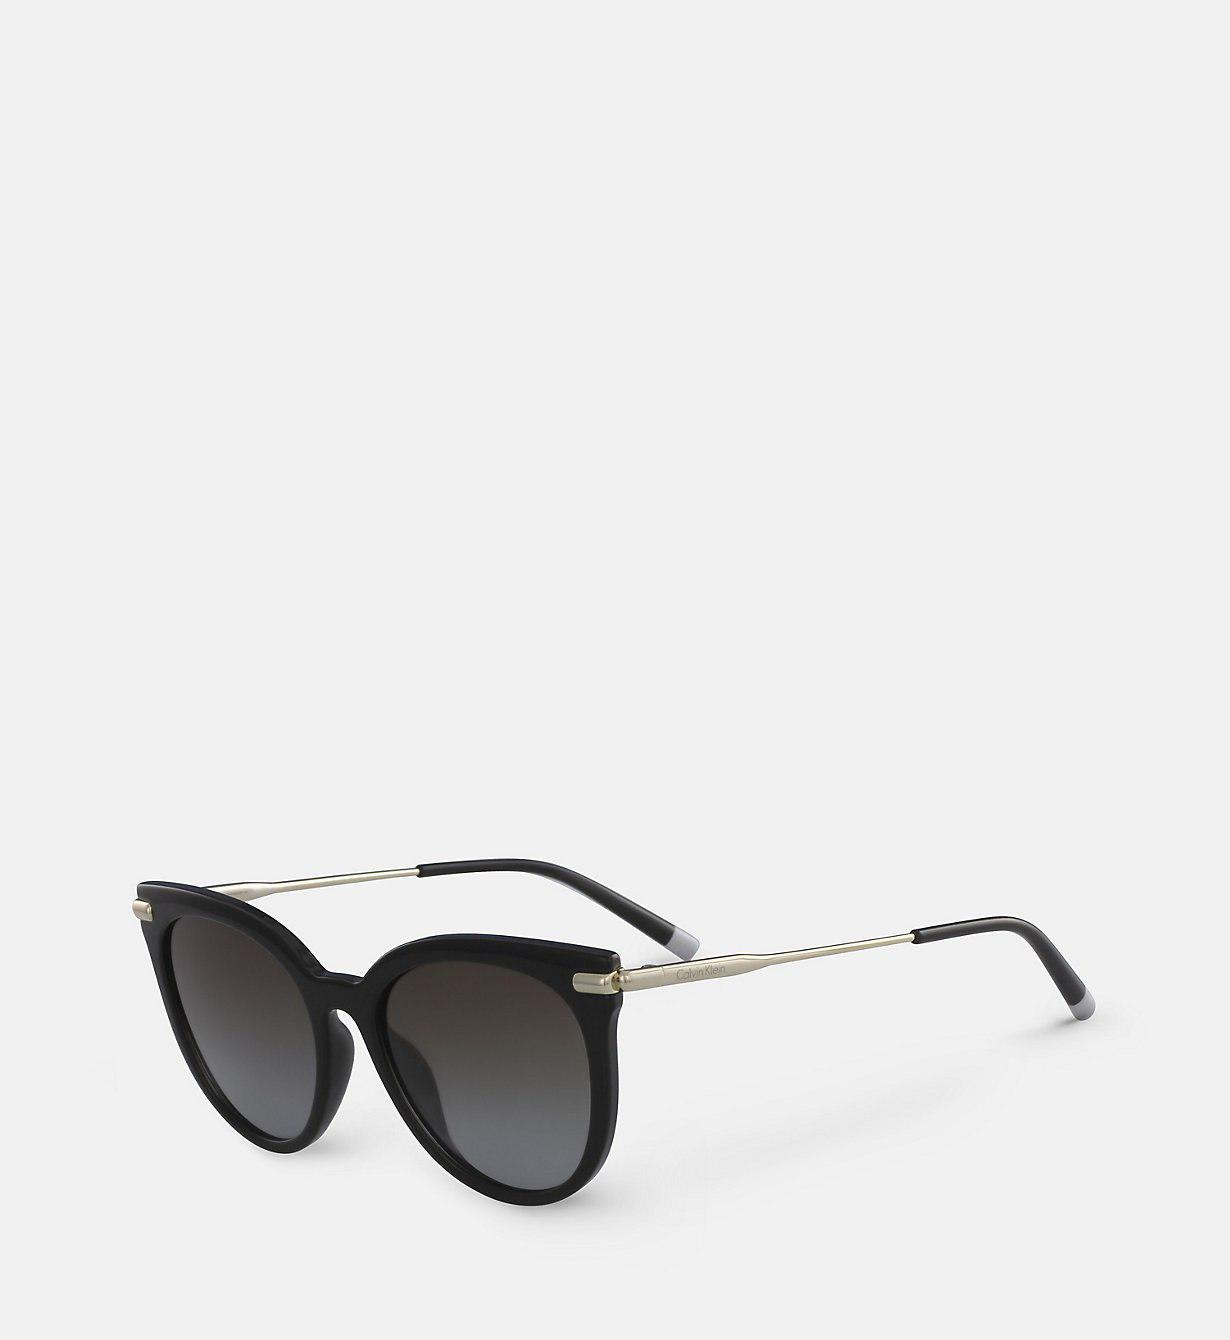 Lyst Sunglasses Calvin Eye Cat Ck3206s Klein Black qSzHB